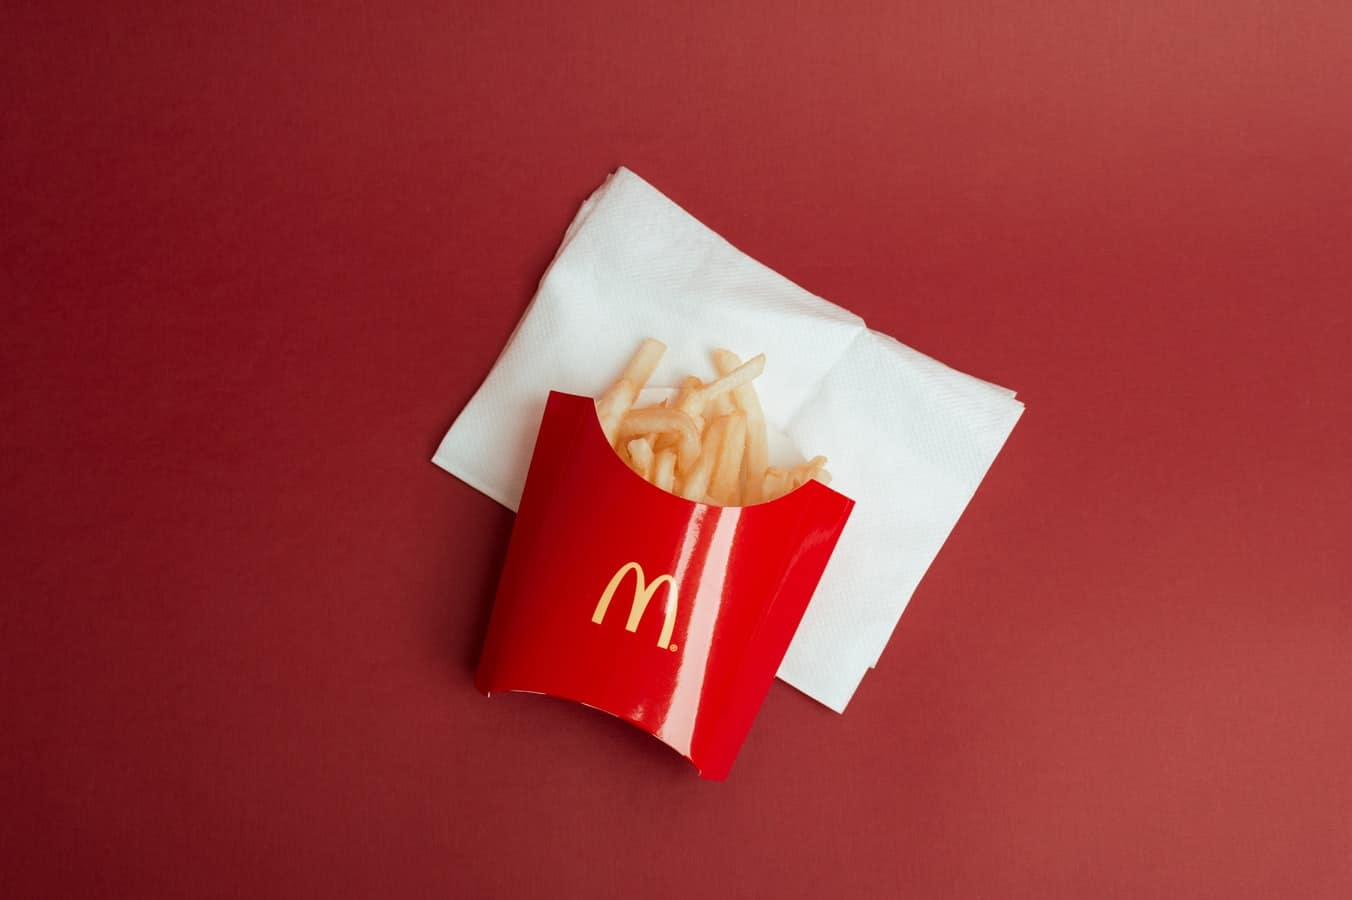 How to microwave McDonald's fries